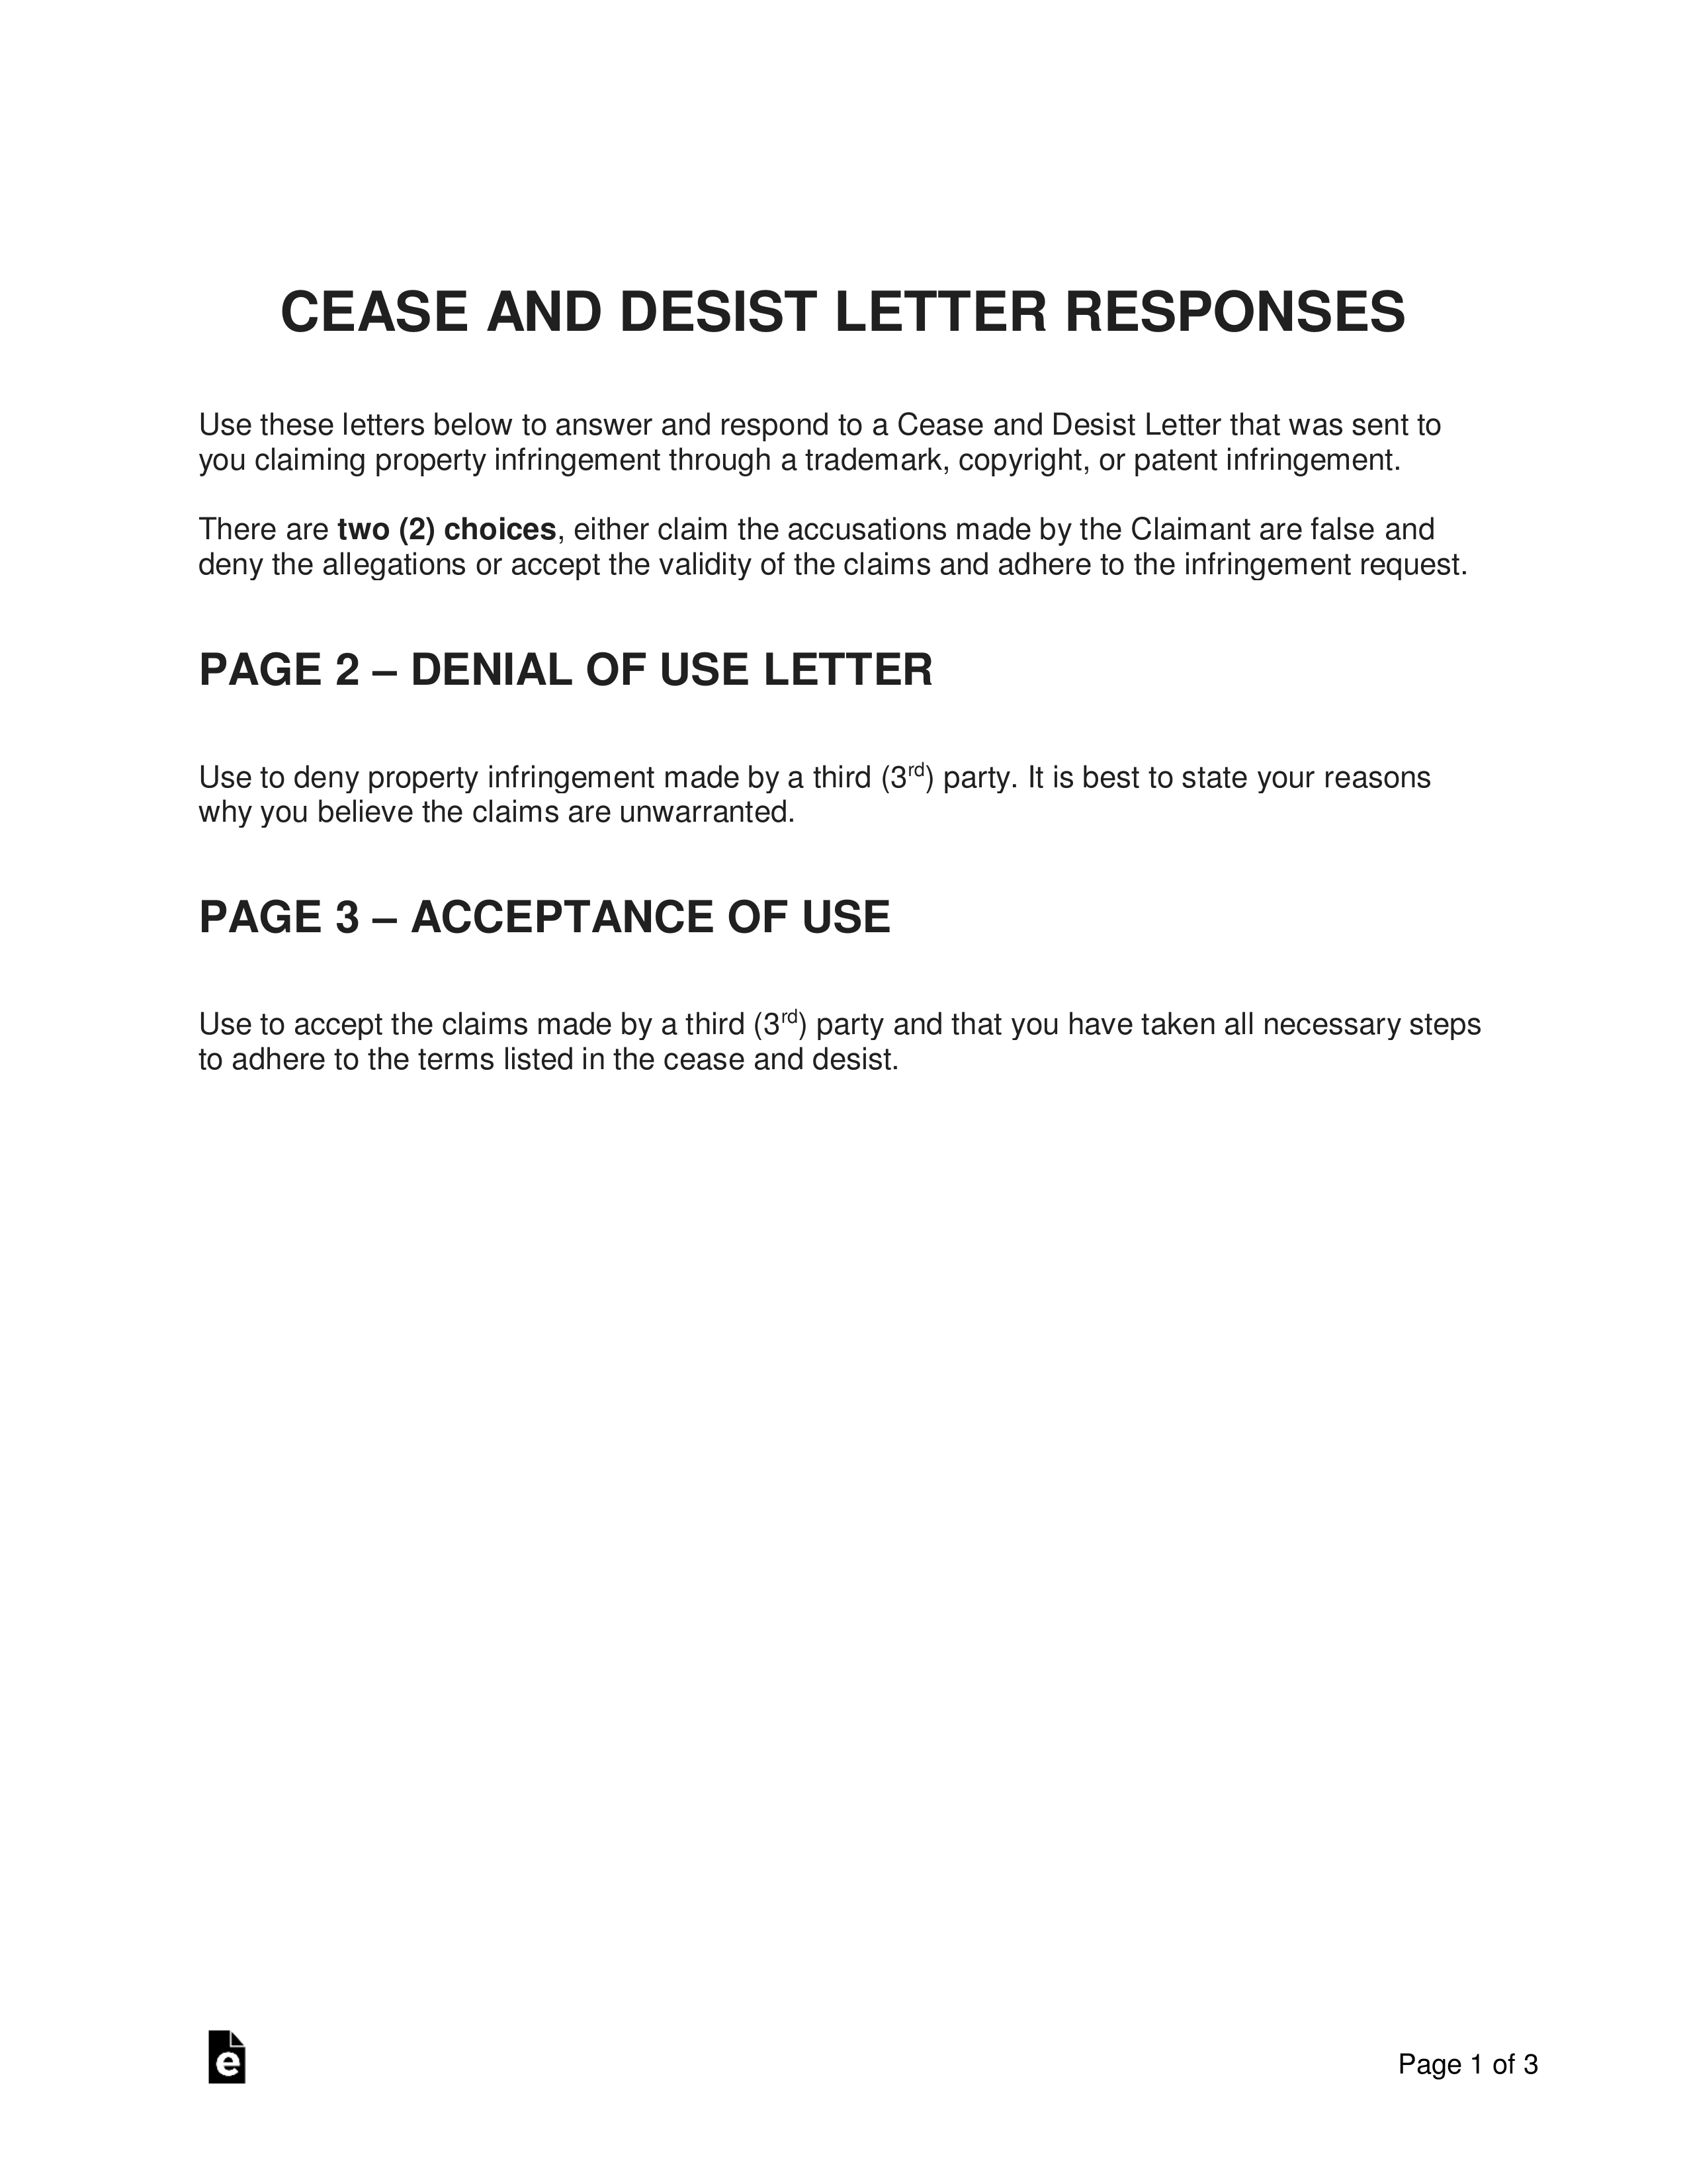 Copyright Cease And Desist Letter Sample from eforms.com